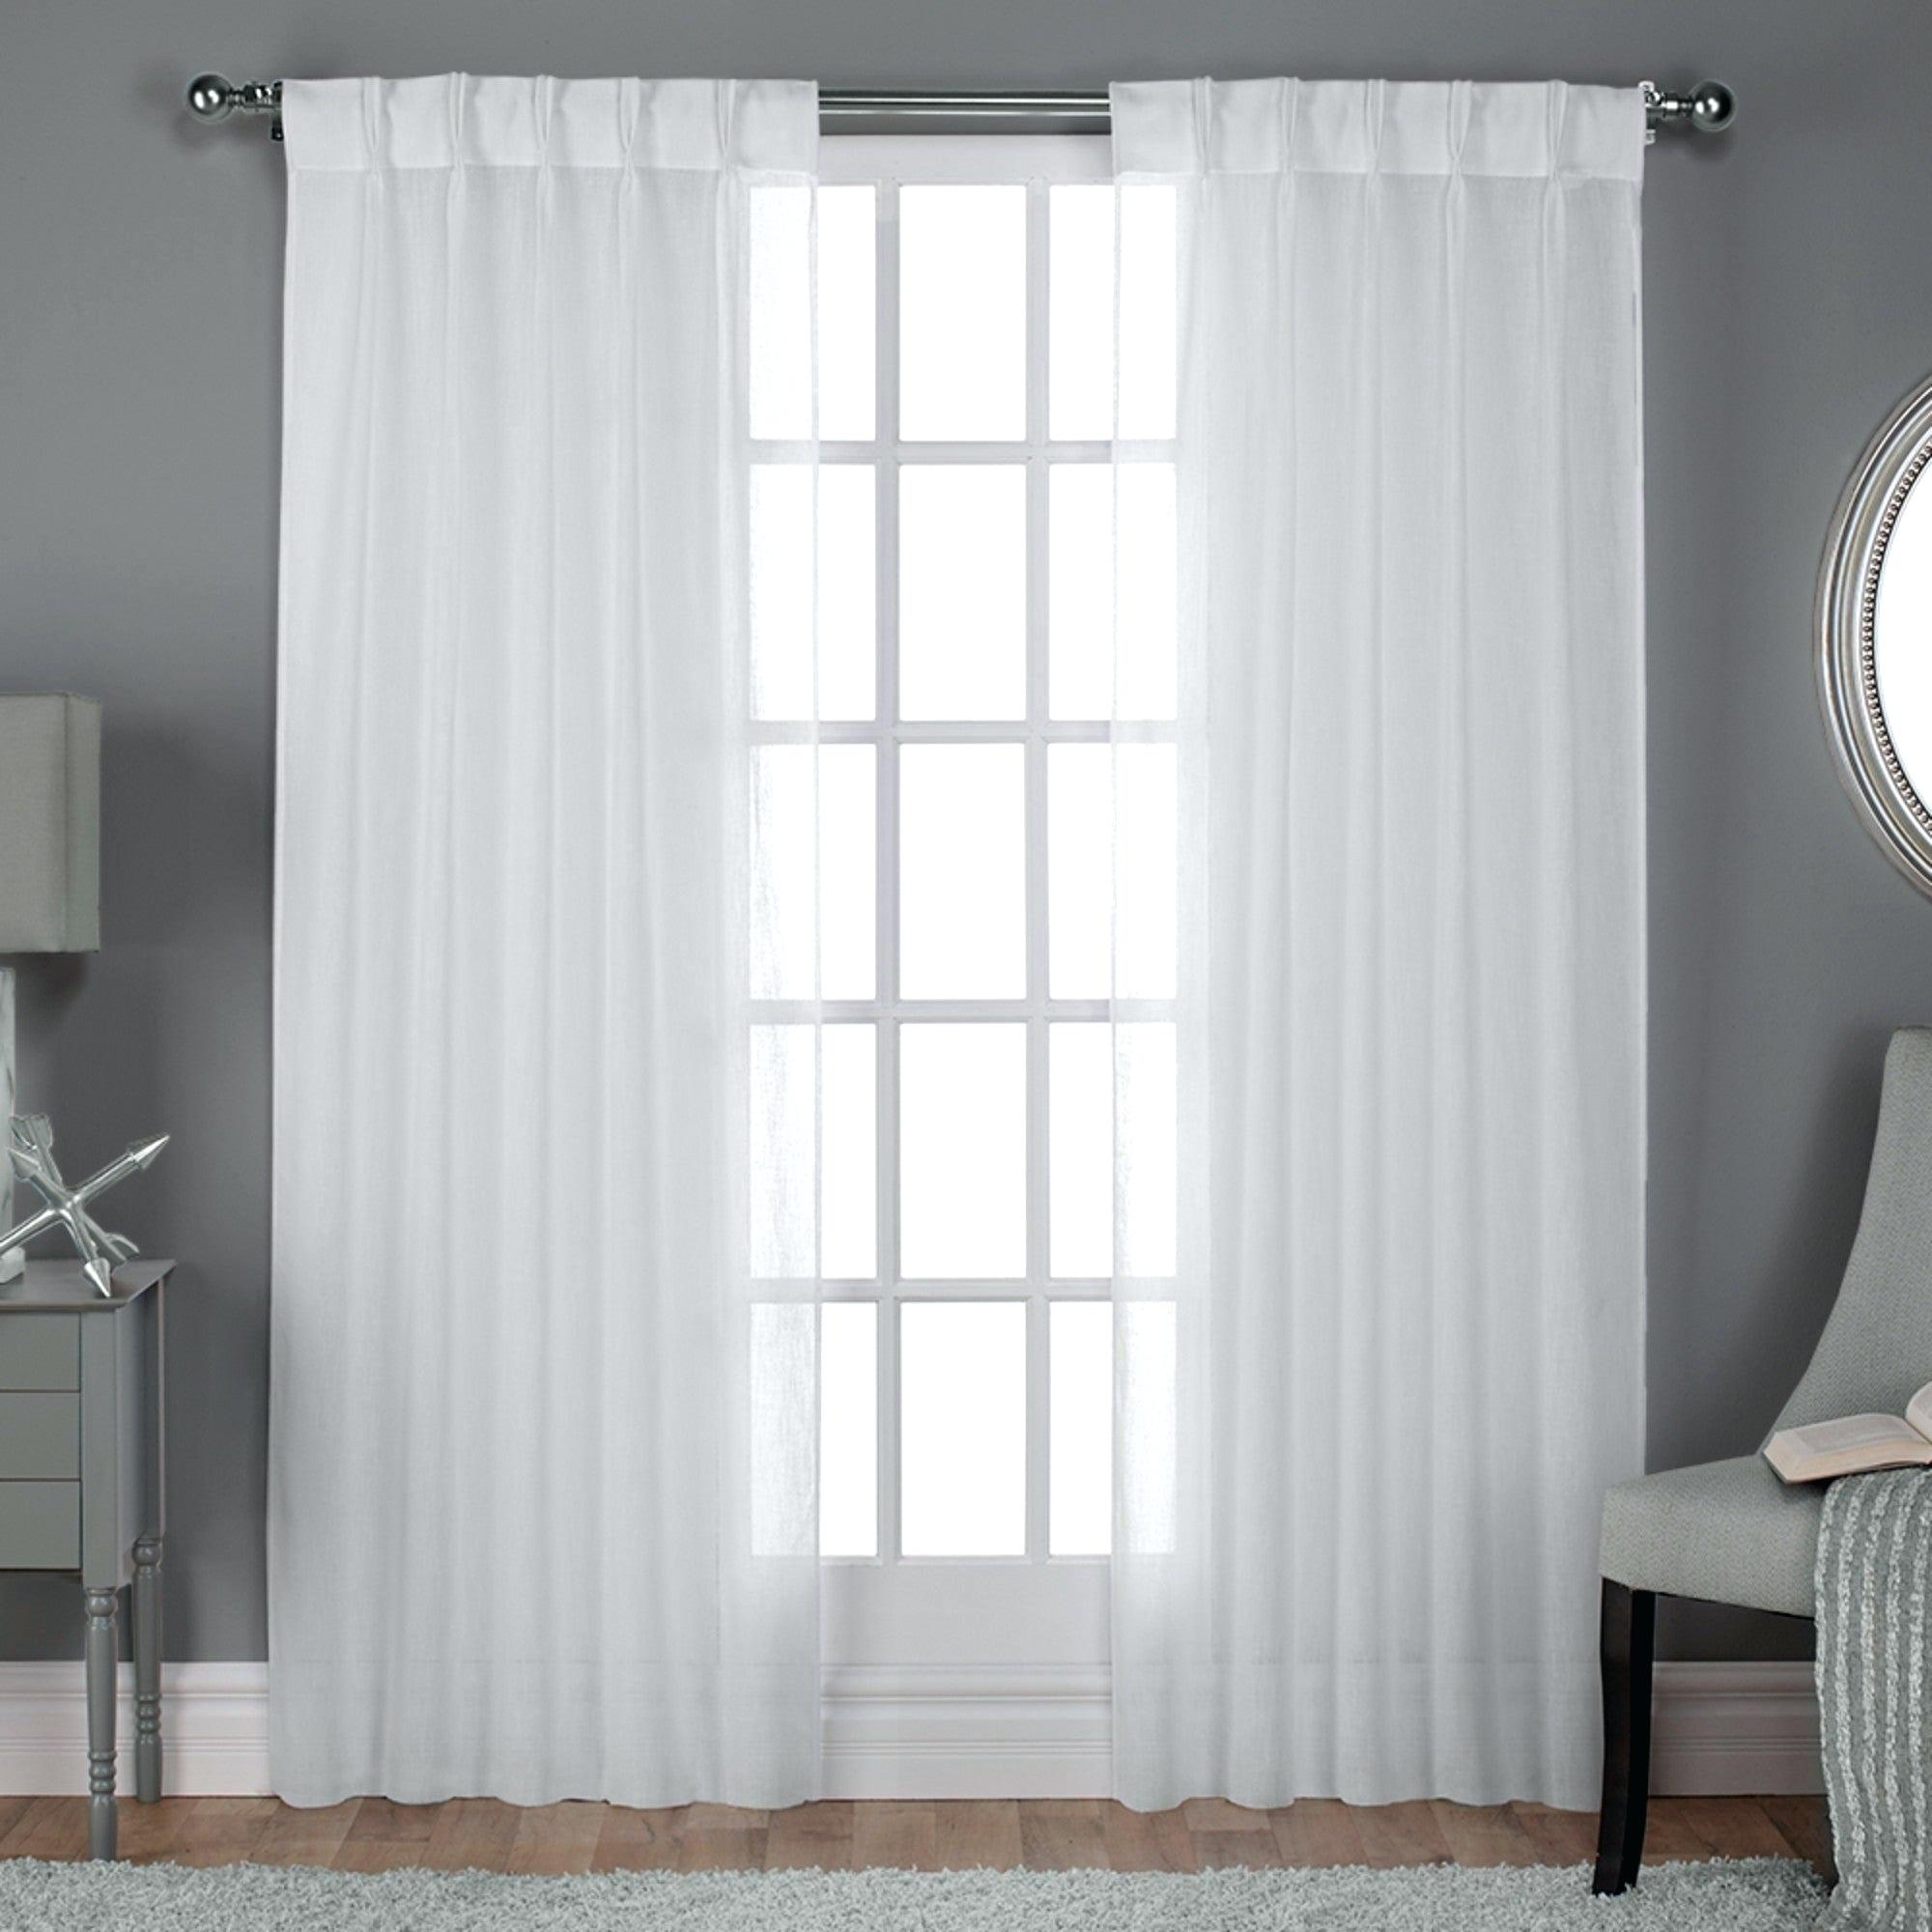 Pinch Pleat Drapes With Regard To Signature Pinch Pleated Blackout Solid Velvet Curtain Panels (View 27 of 36)